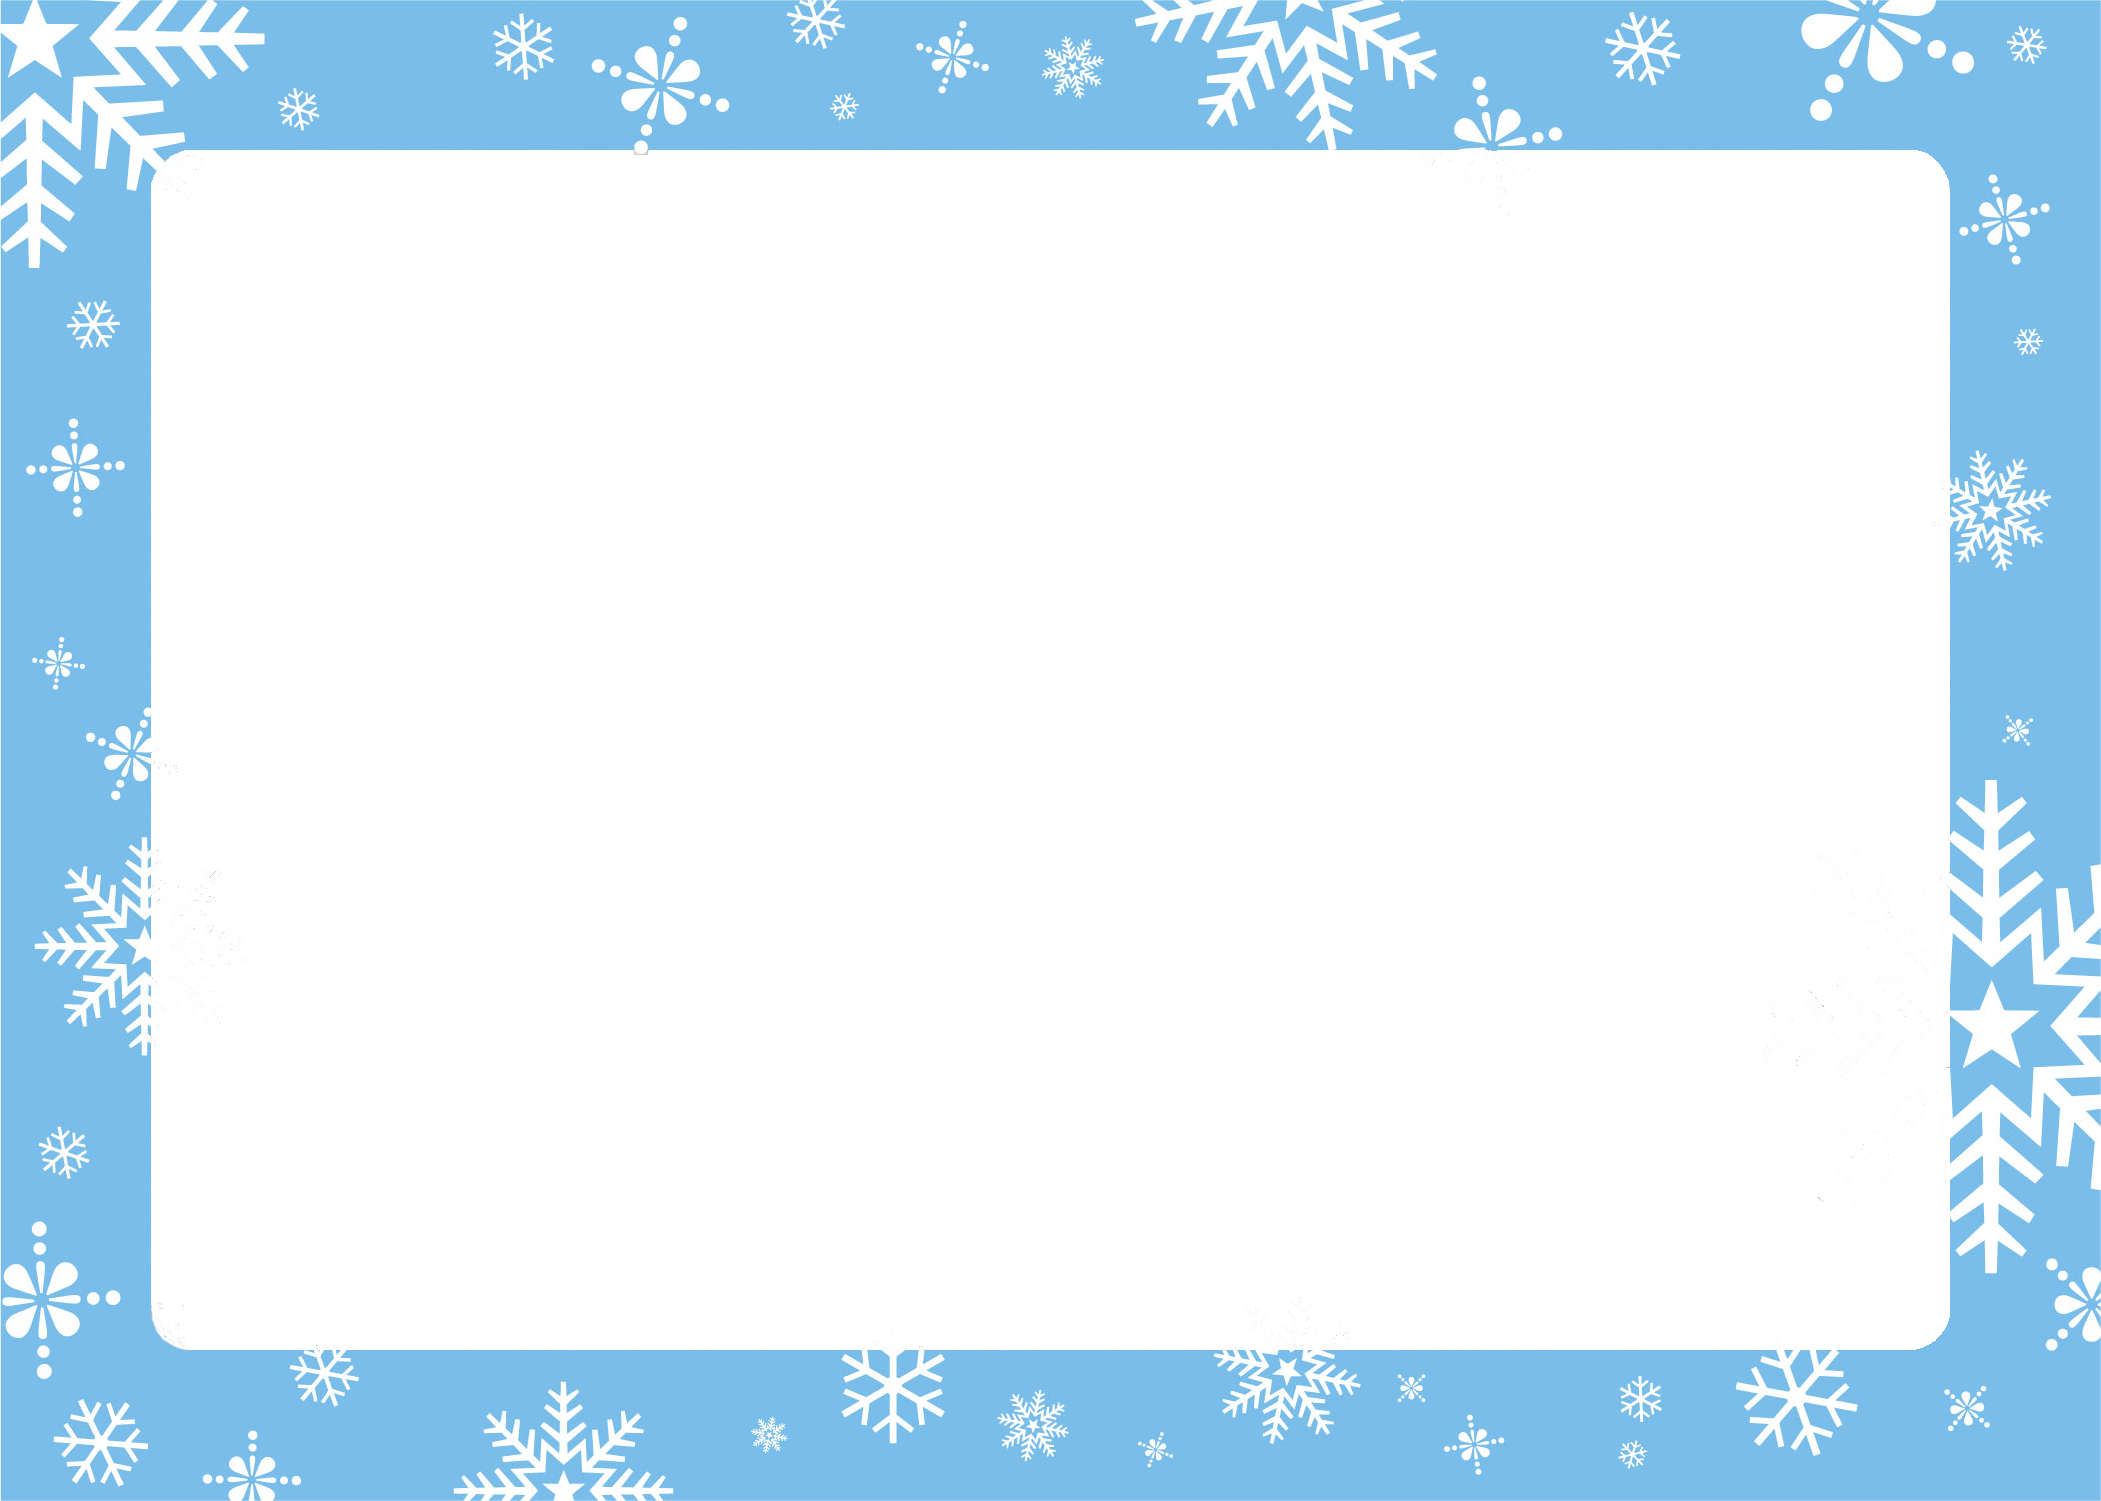 Free Christmas Picture Border Frames Create Holiday Greeting Card Templates On Zazzle Zazzlr